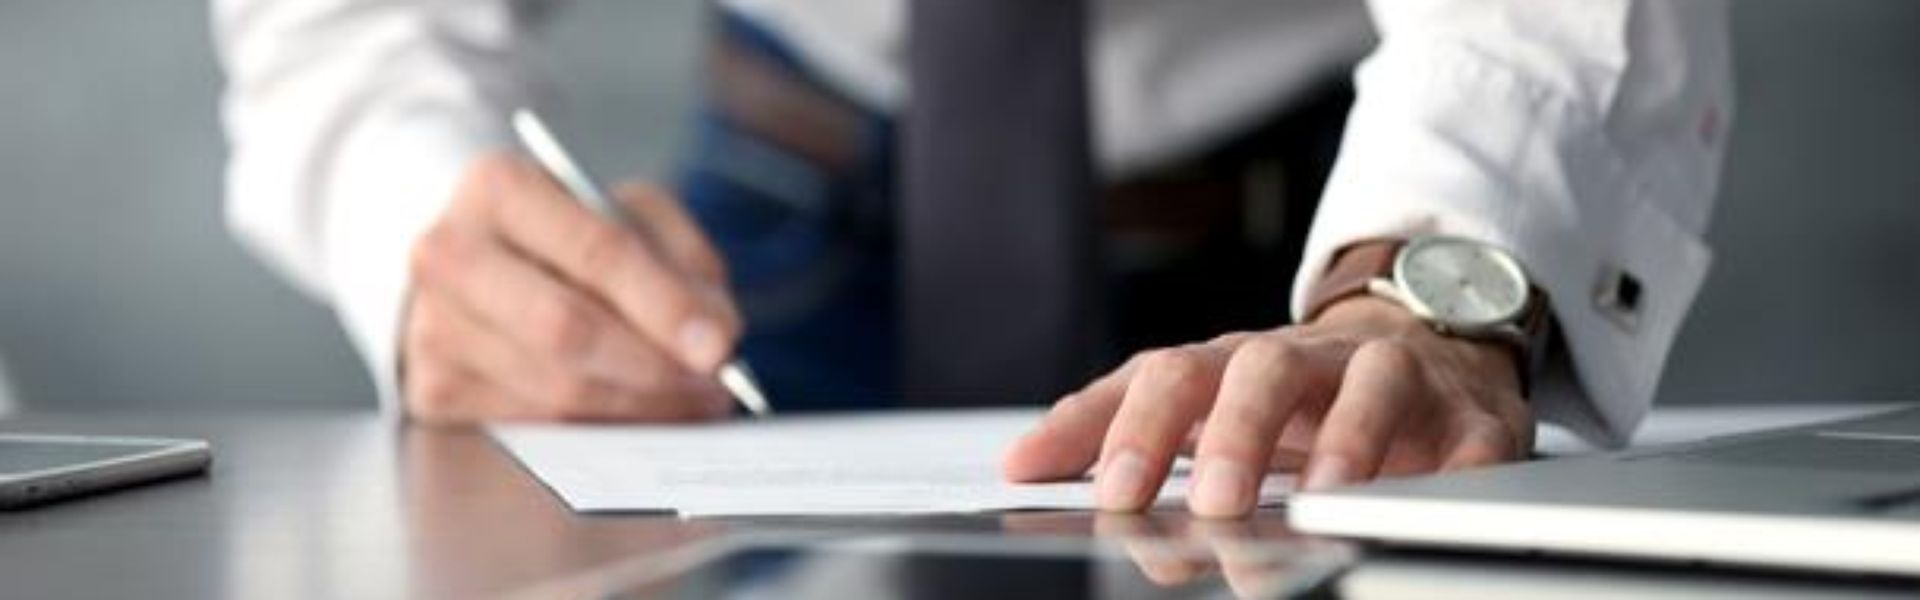 Xerox Helps Legal Teams Accelerate Casework, Identify Risk with New Analytics Service